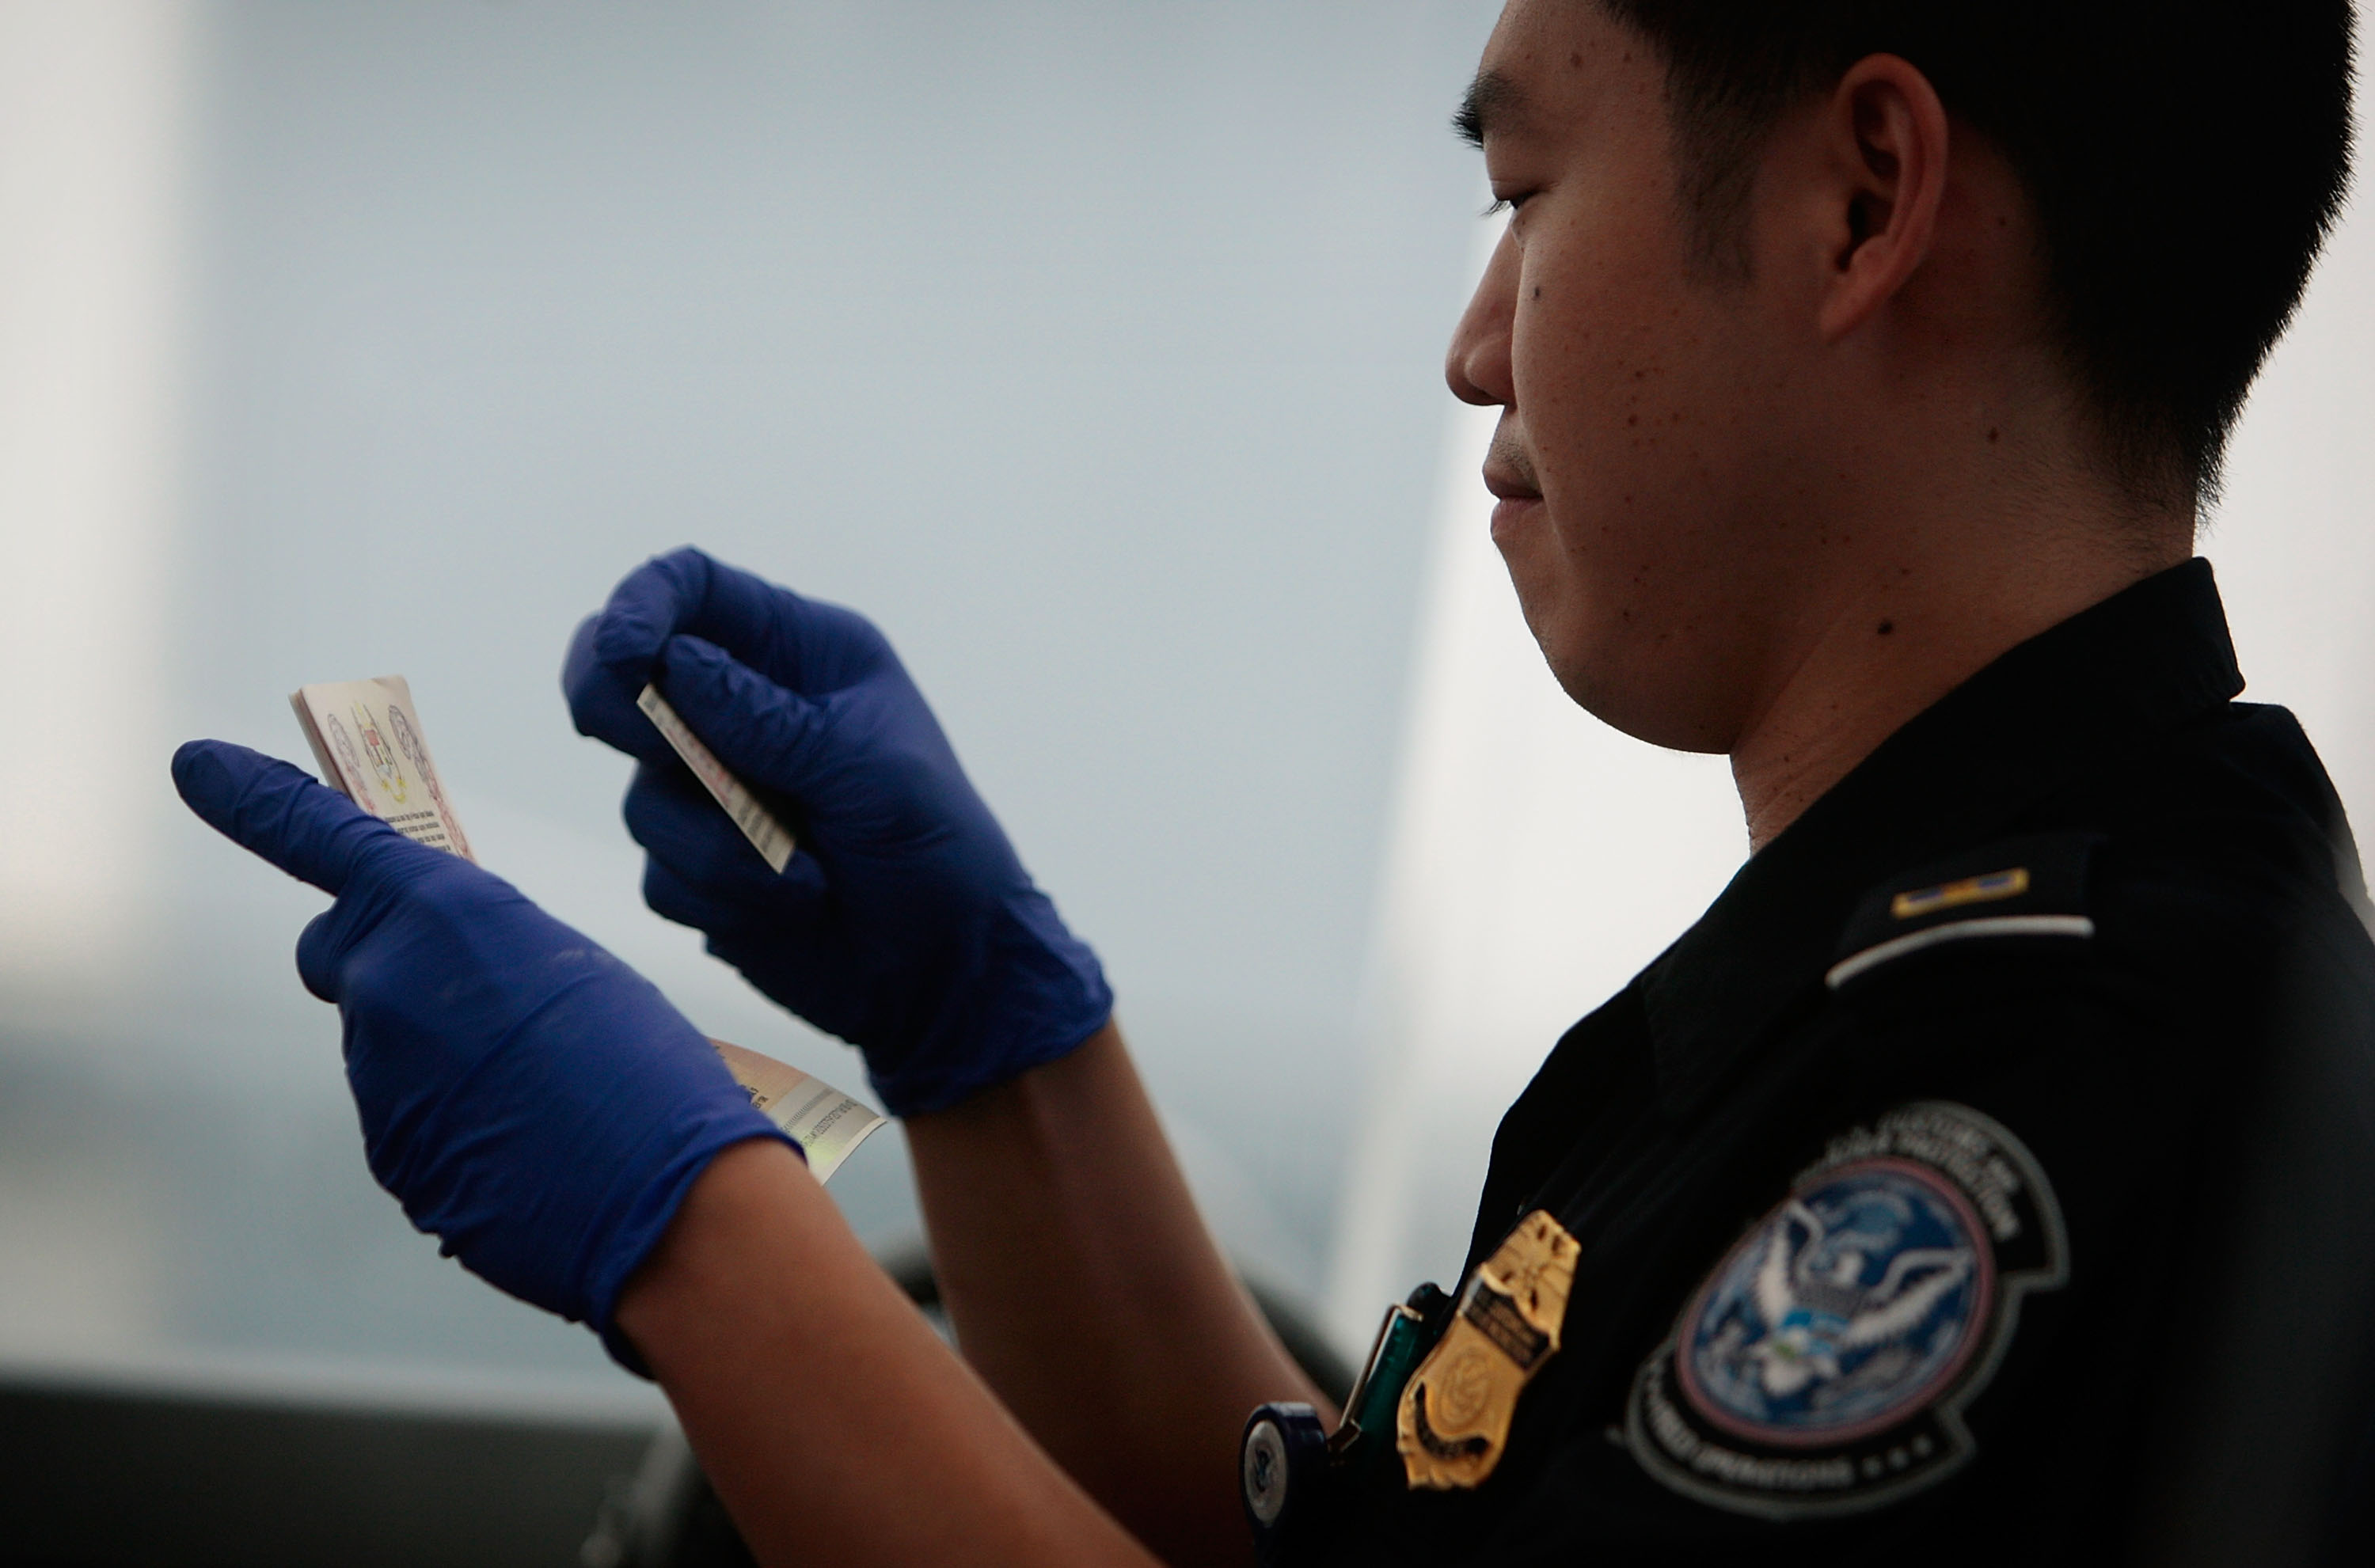 A United States Customs and Border Protection officer checks checks two forms of identification for a traveler arriving from overseas into Newark International Airport.